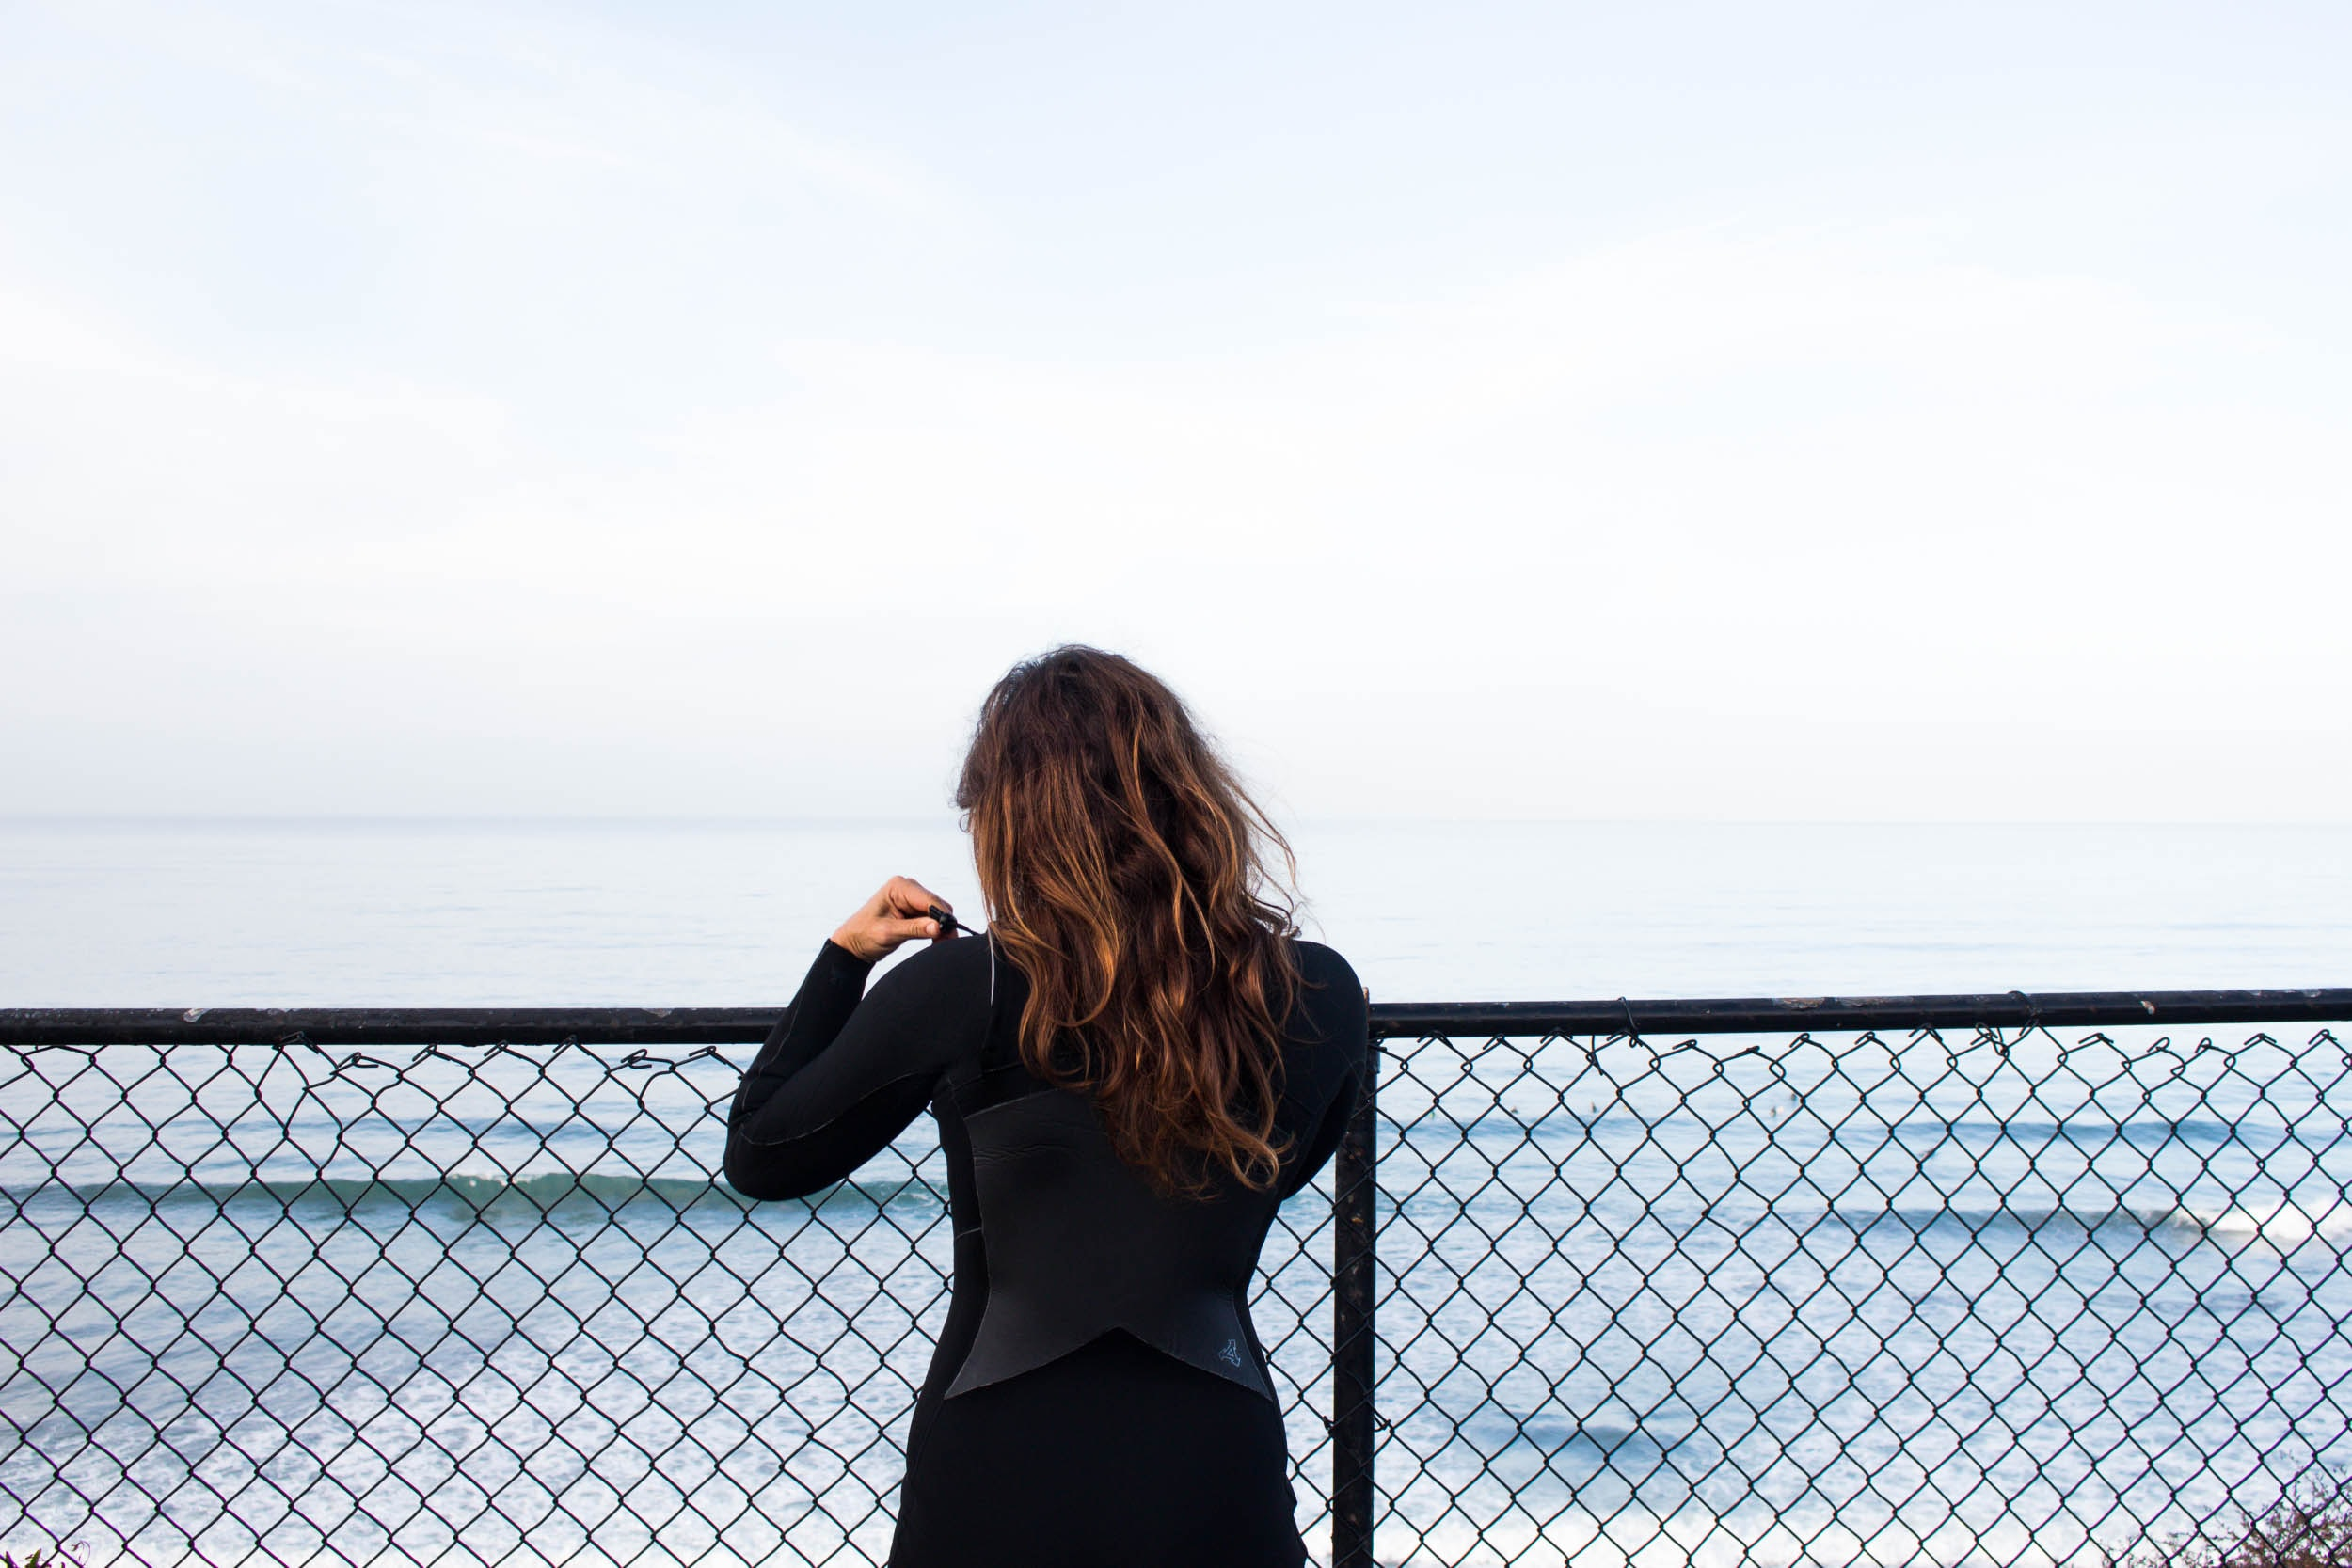 woman leaning on fence facing sea